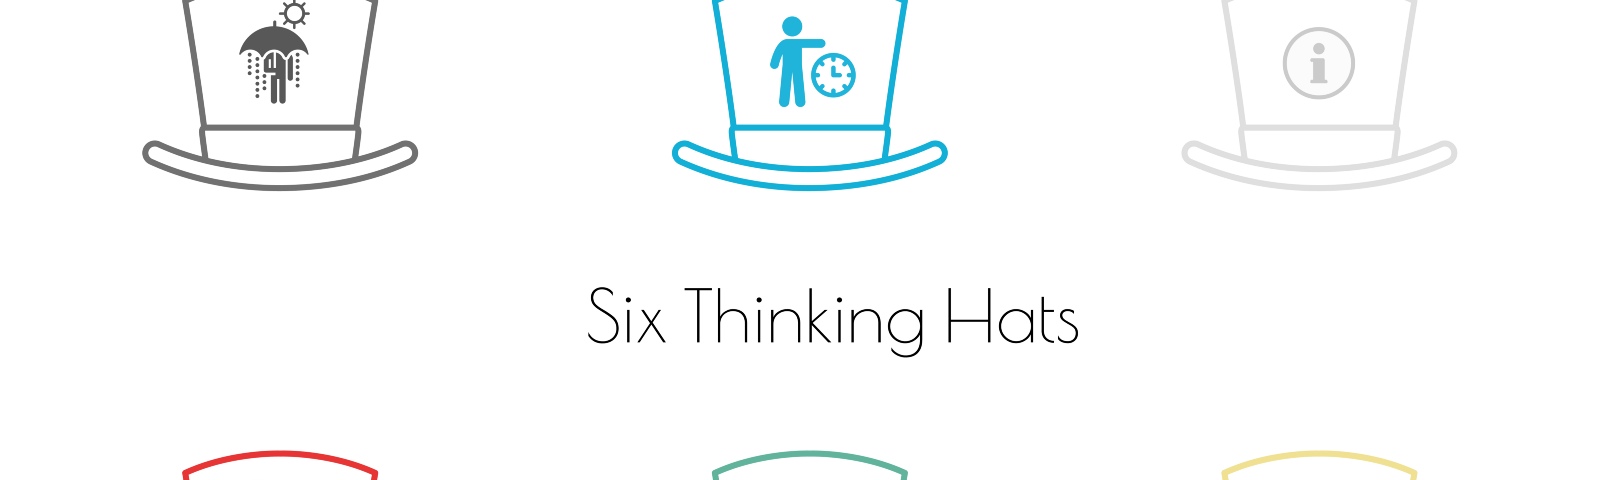 6 top hats in the six following colors: Black, Blue, White, Red, Green, Yellow. The hats introduces Six Thinking Hats Method